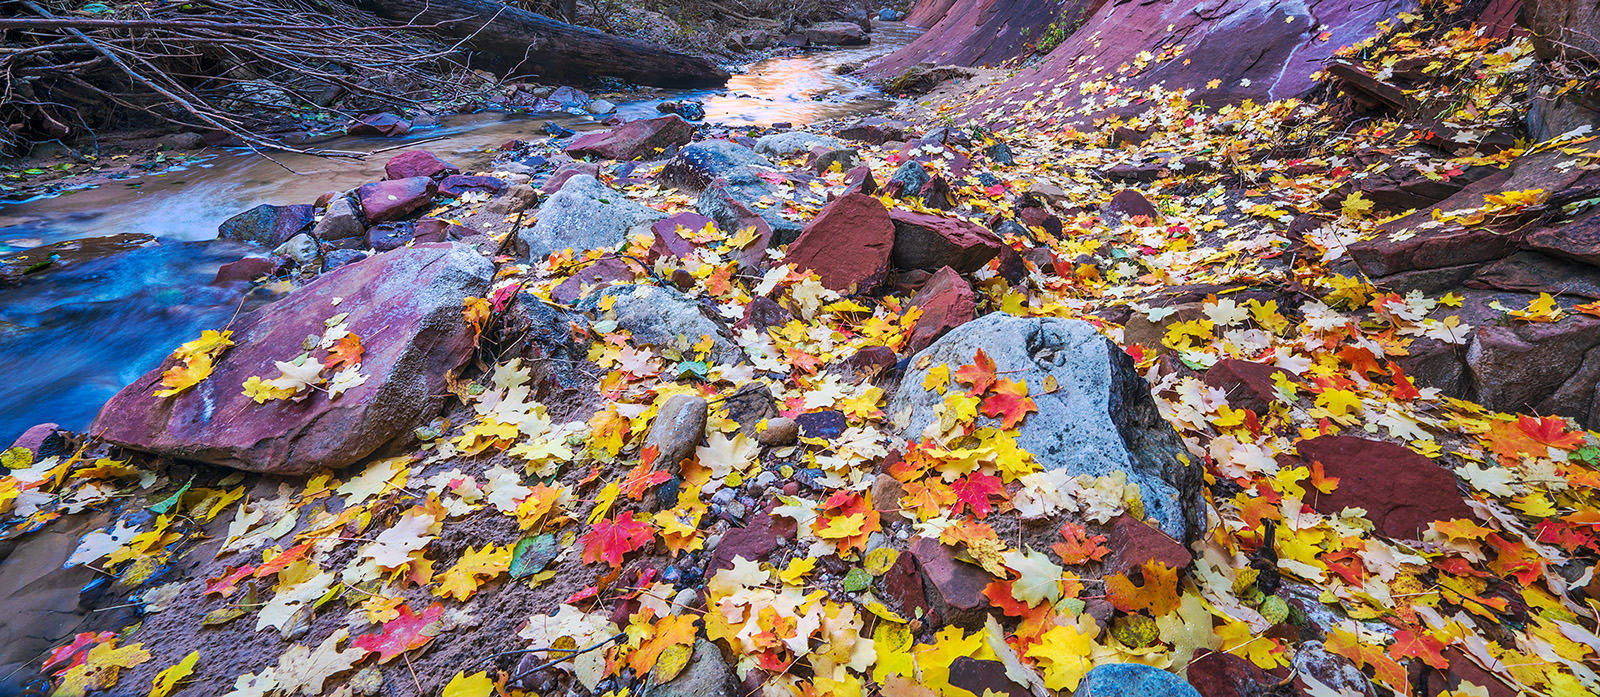 Fallen Leaves along the West Fork trail in October.